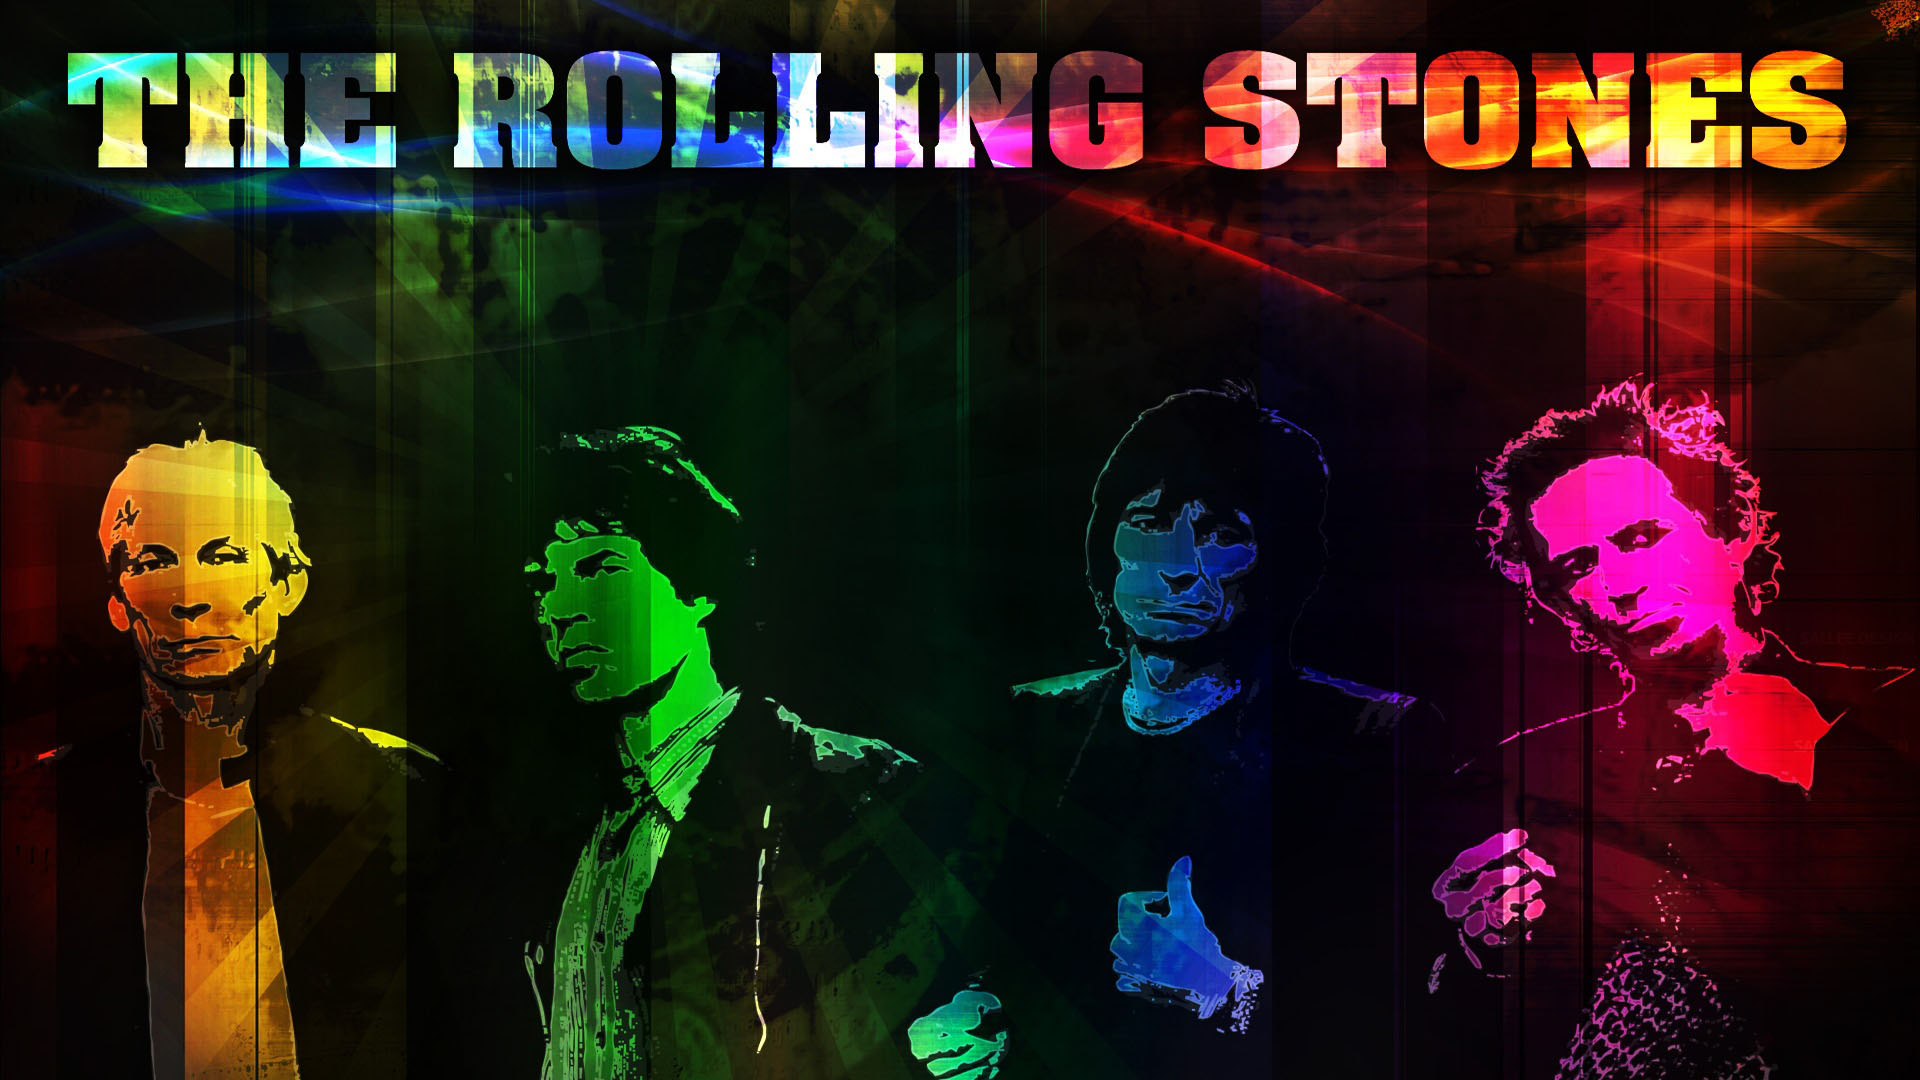 The Rolling Stones images